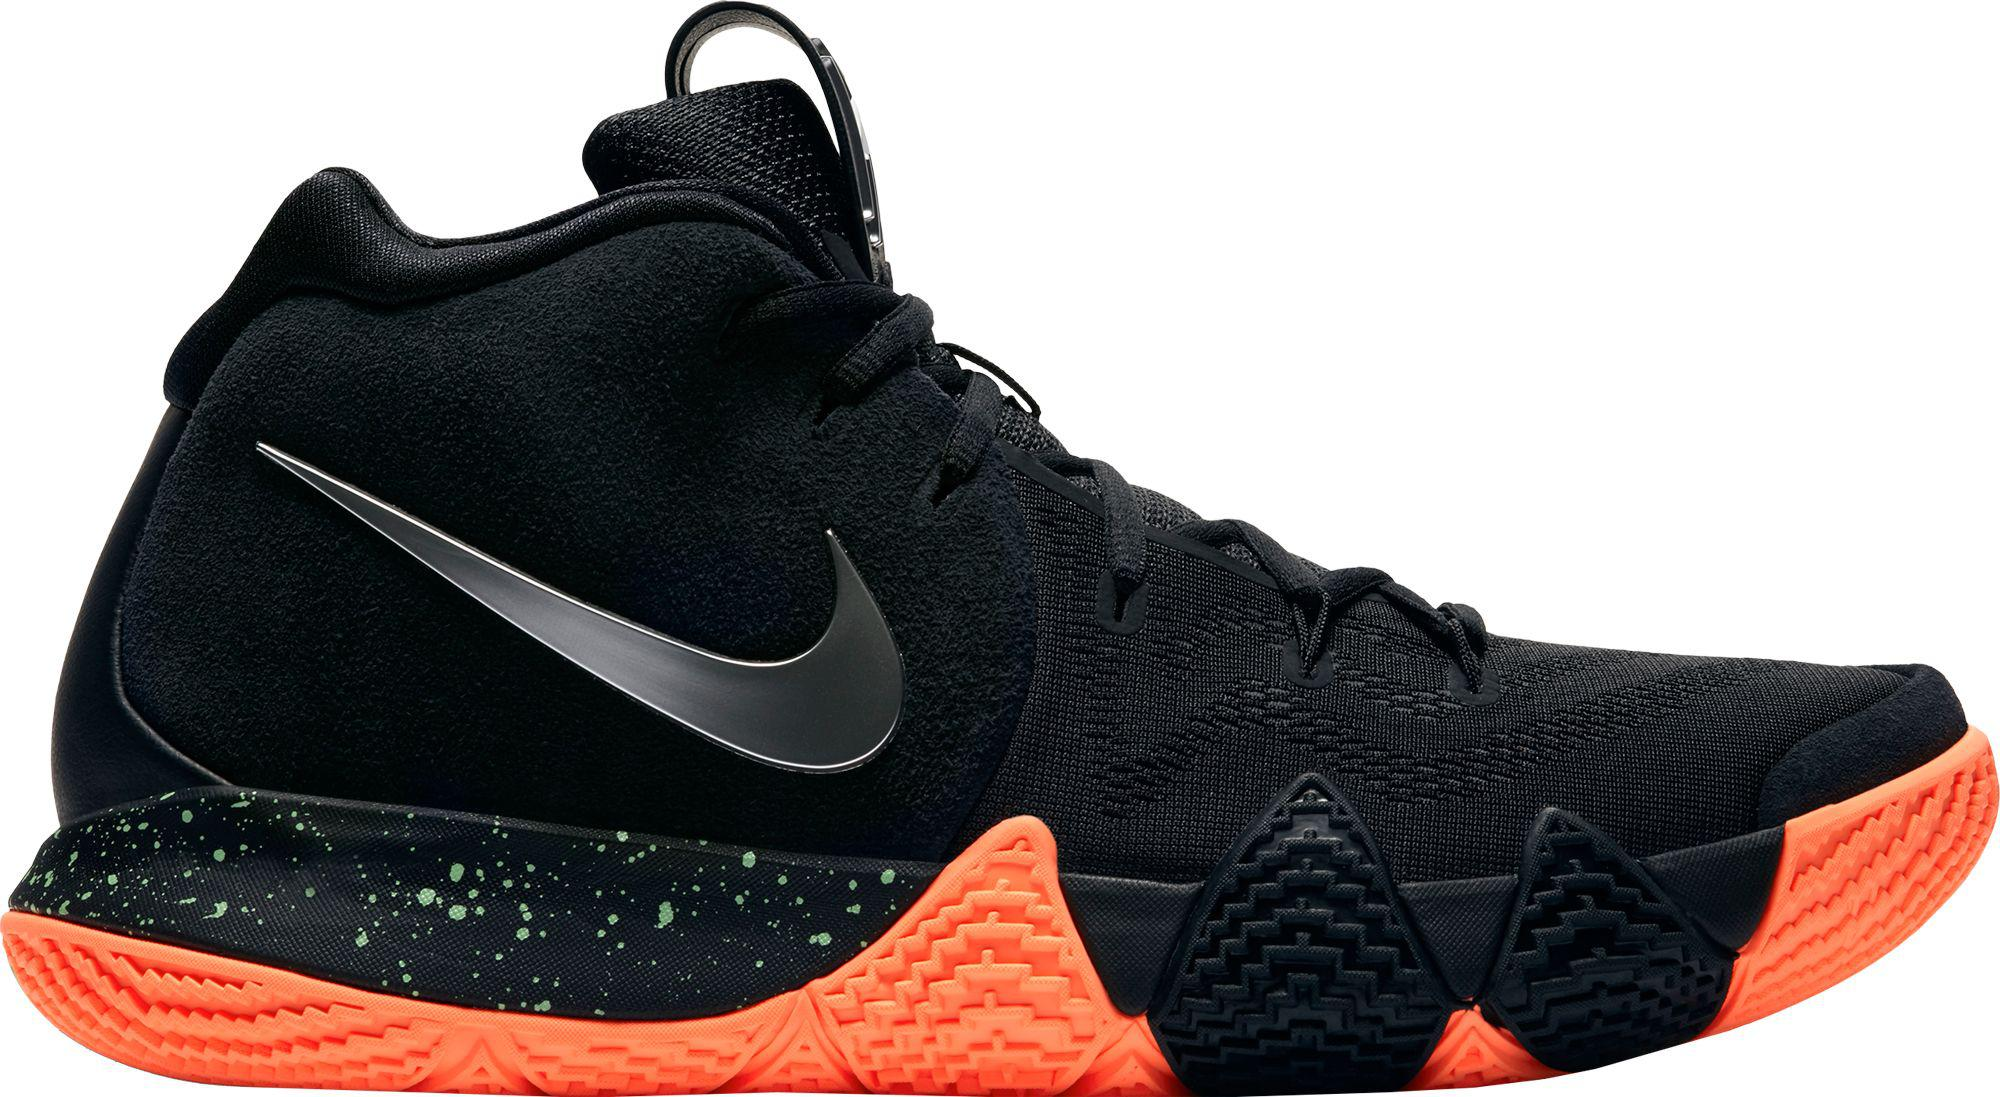 3391050b7098 Lyst - Nike Kyrie 4 Basketball Shoes in Black for Men